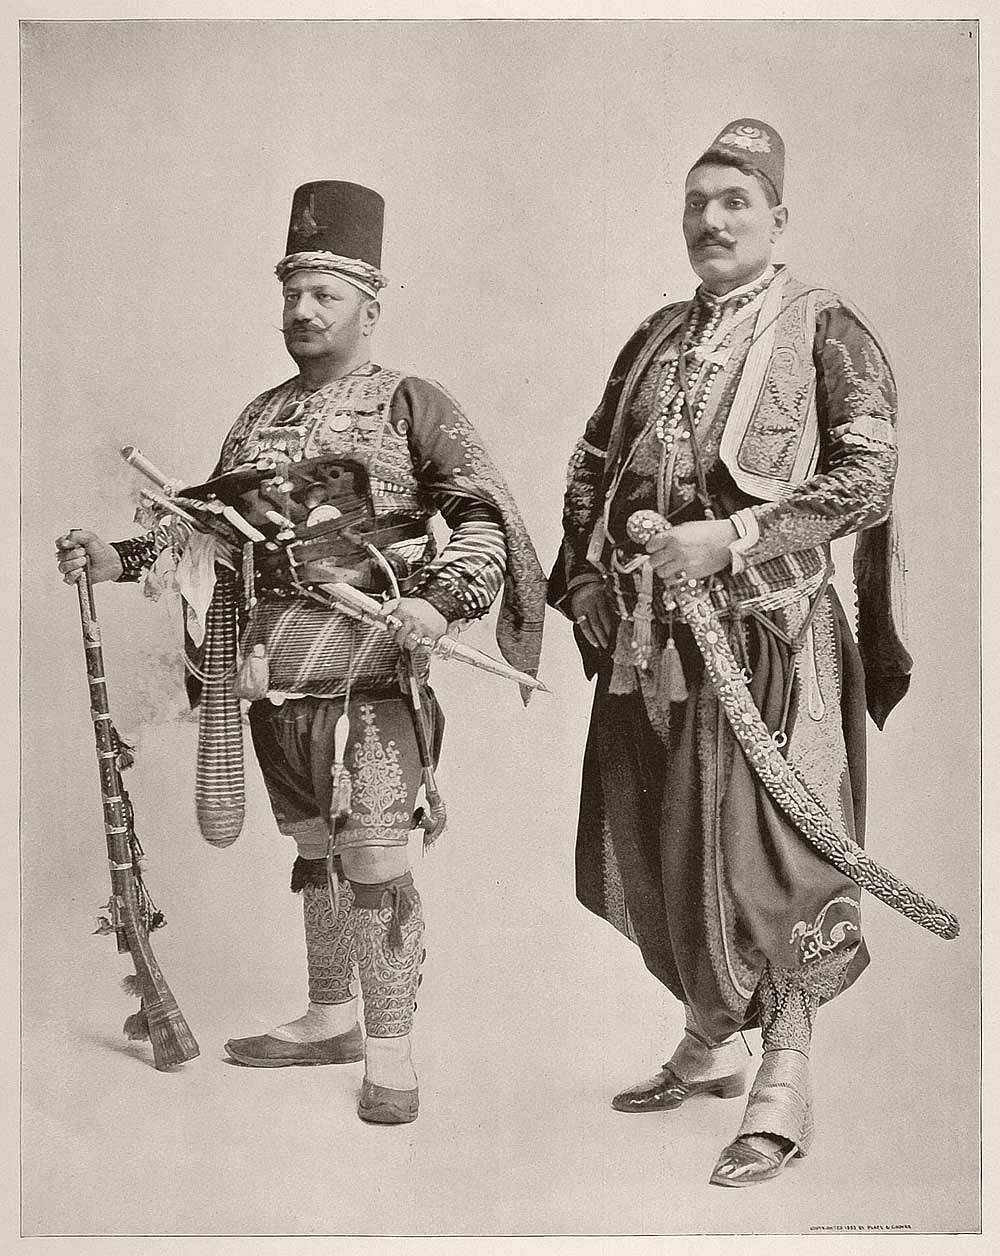 A Janissary at the Chicago world fair in 1893.